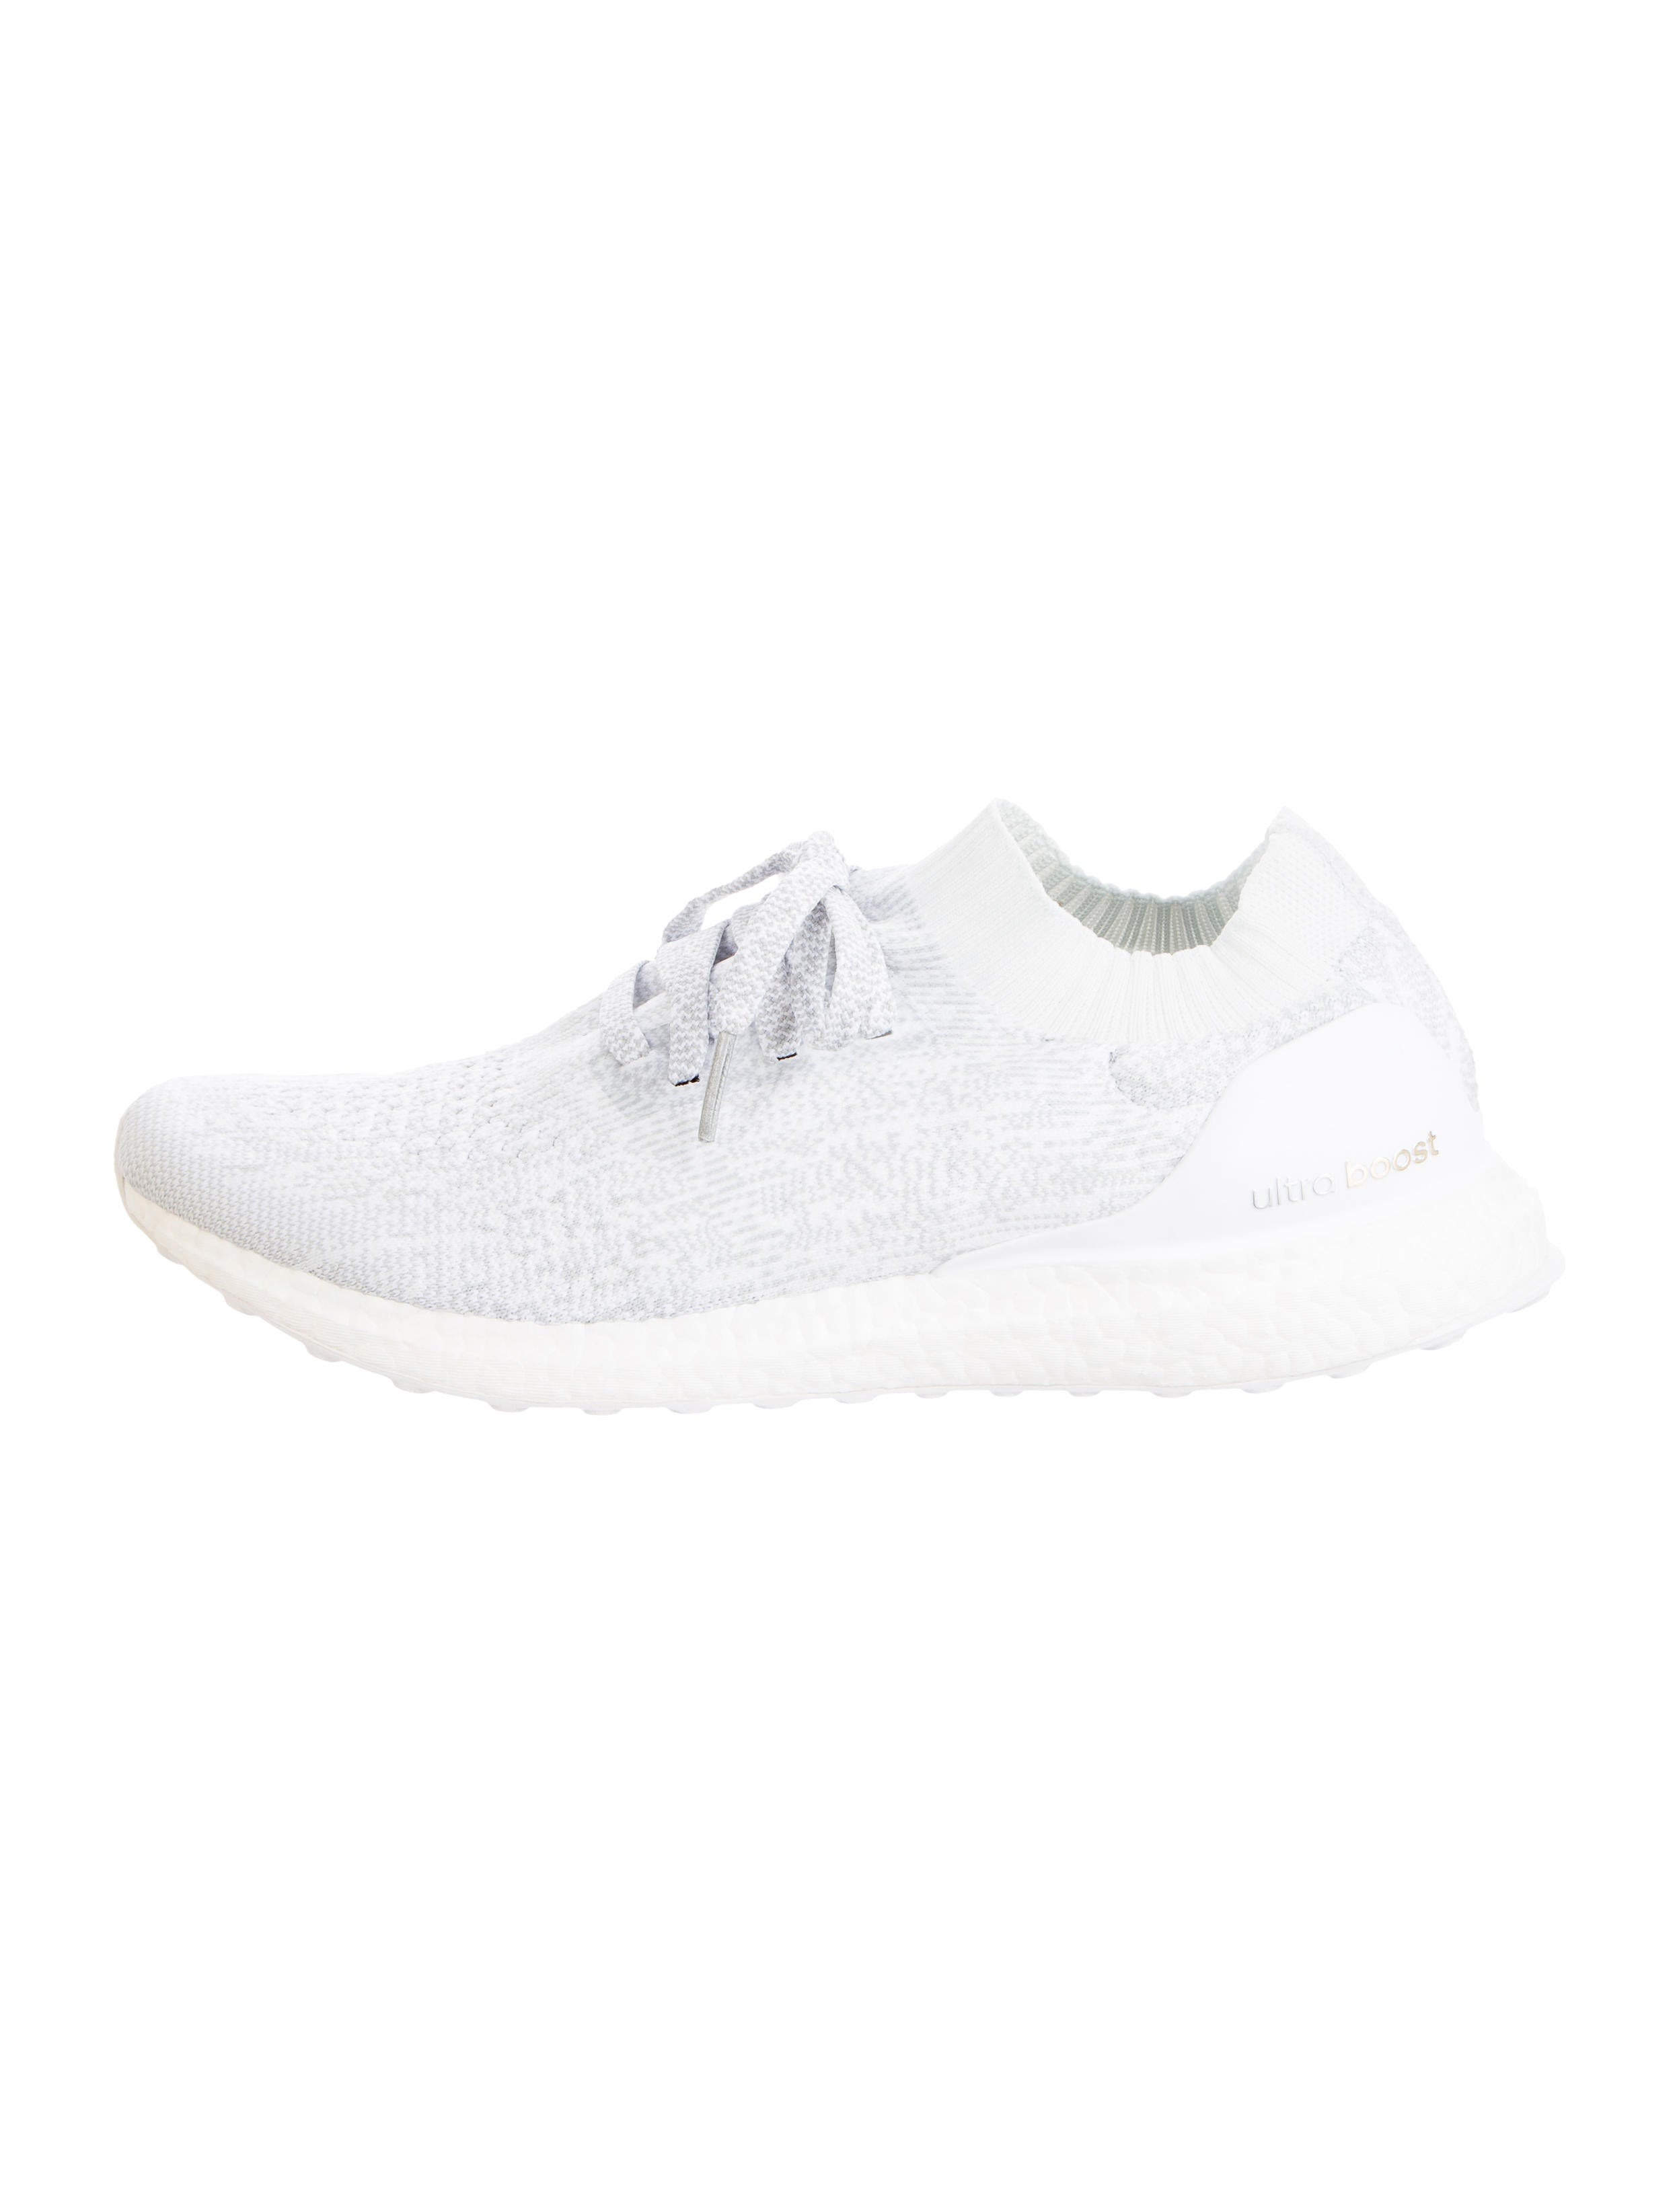 029d0fe7c0ea Adidas UltraBoost Uncaged LTD Sneakers w  Tags - Shoes - W2ADS20535 ...